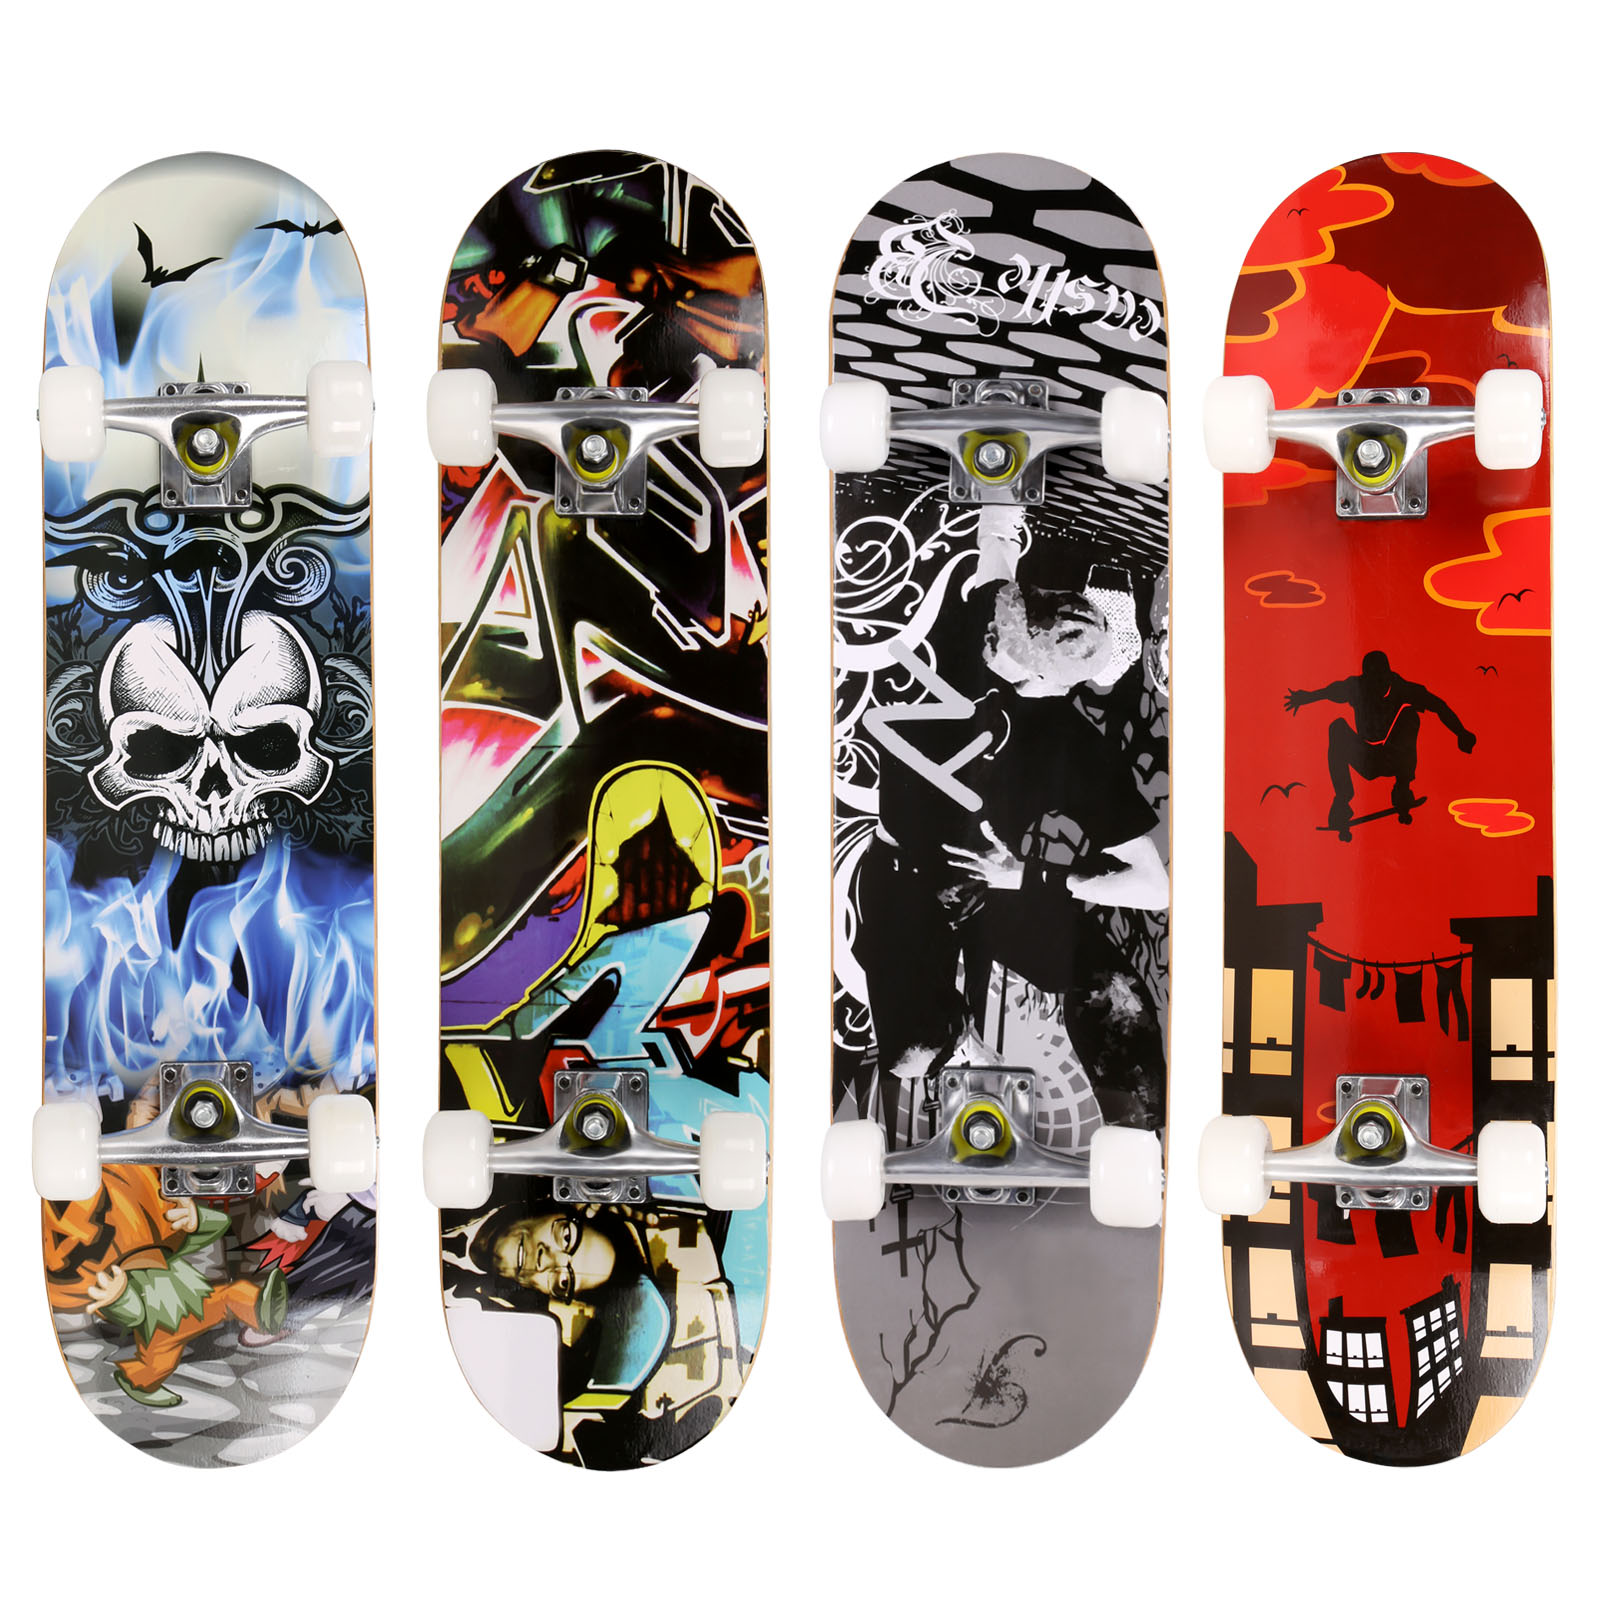 Brand PRO Skull Pattern Longboard Skateboard Complete Deck Wood Deck Skate Board Outdoor Extreme Sports Long Board Hoverboard shell starfish deck pattern indoor outdoor area rug